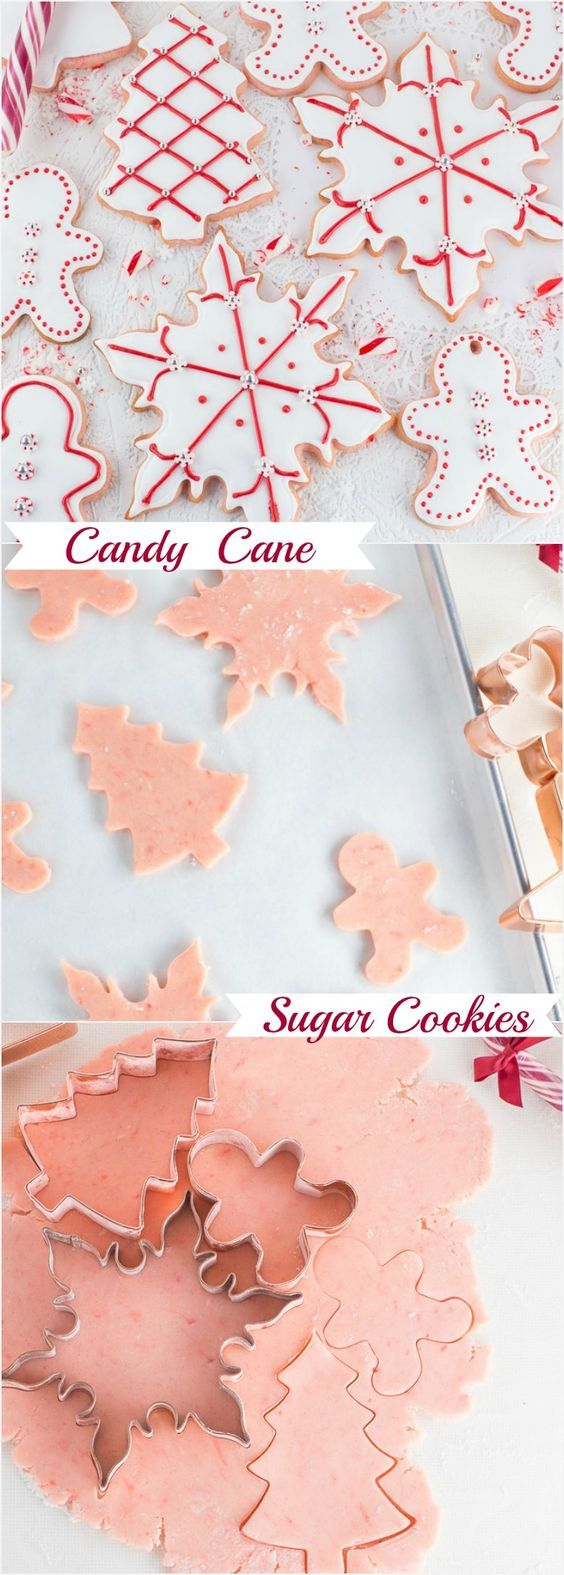 Candy Cane Sugar Cookies for Christmas - Easy Christmas Desserts